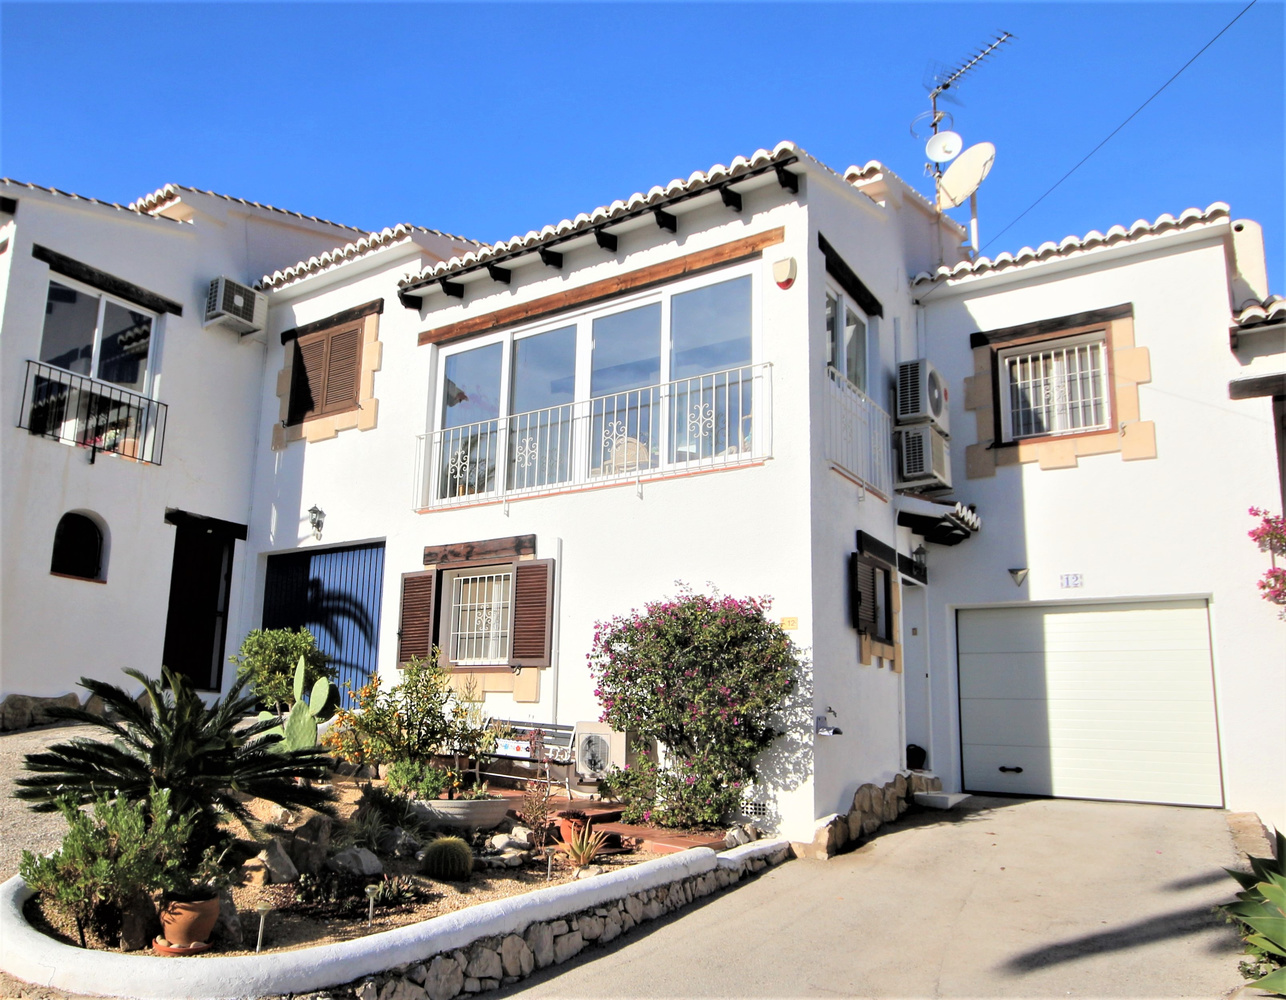 A spacious and immaculate bungalow with garage in Moraira.